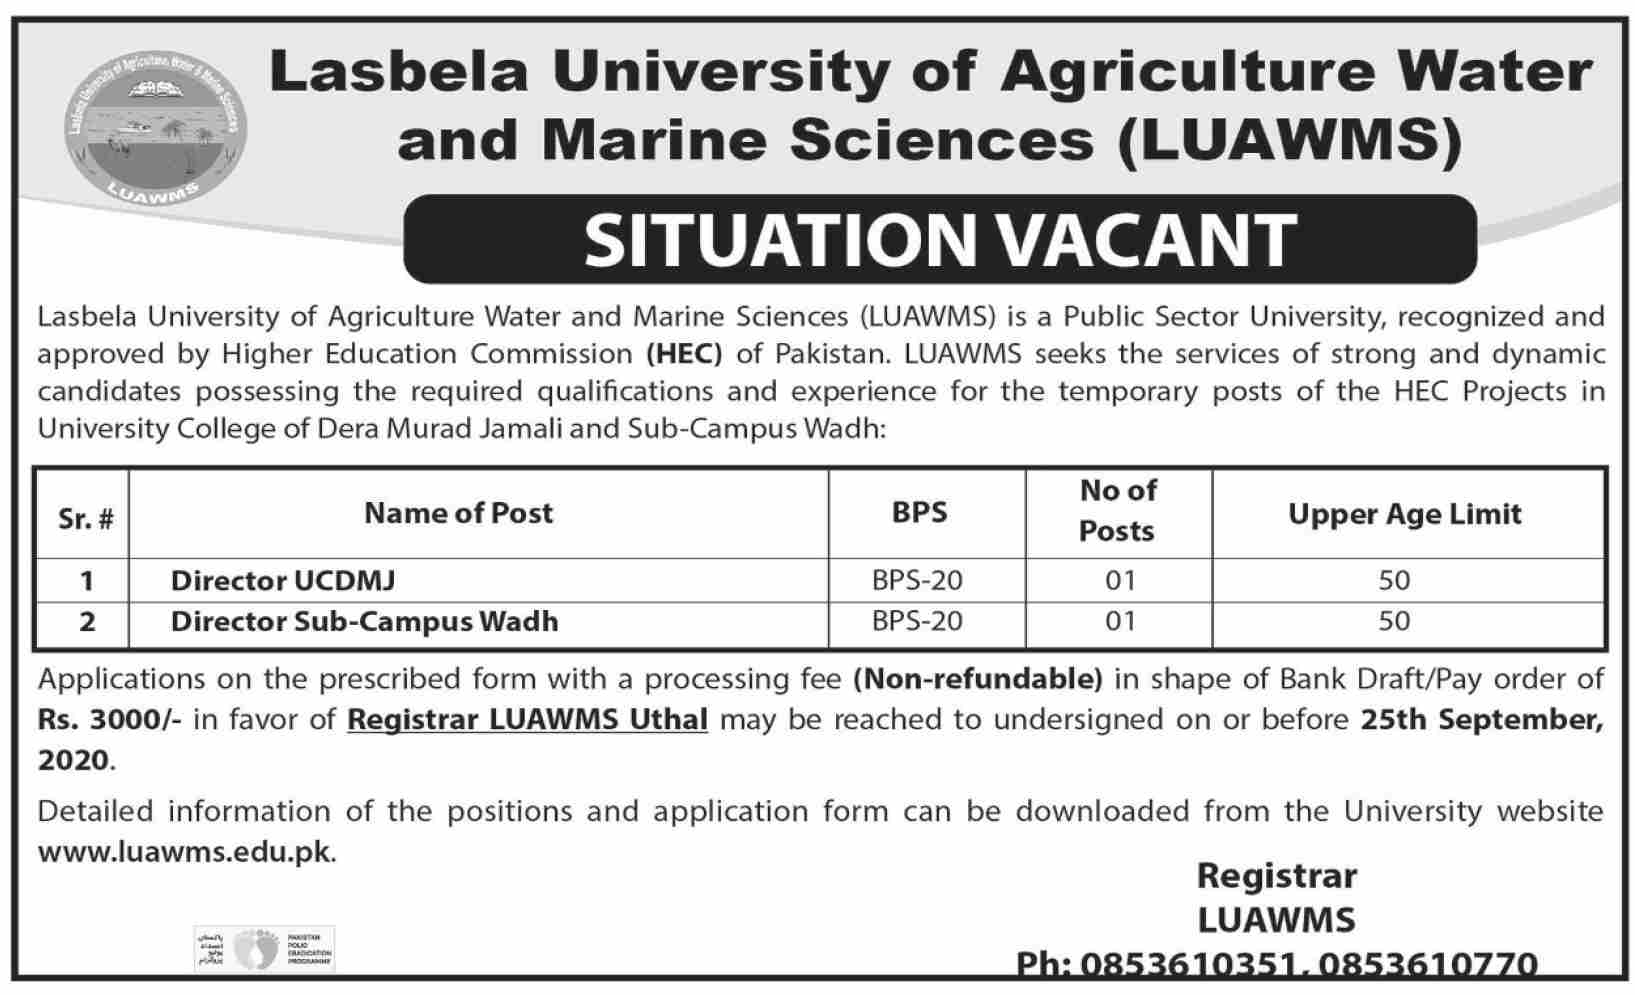 Lasbela University of Agriculture Water and Marine Sciences LUAWMS Jobs August 2020